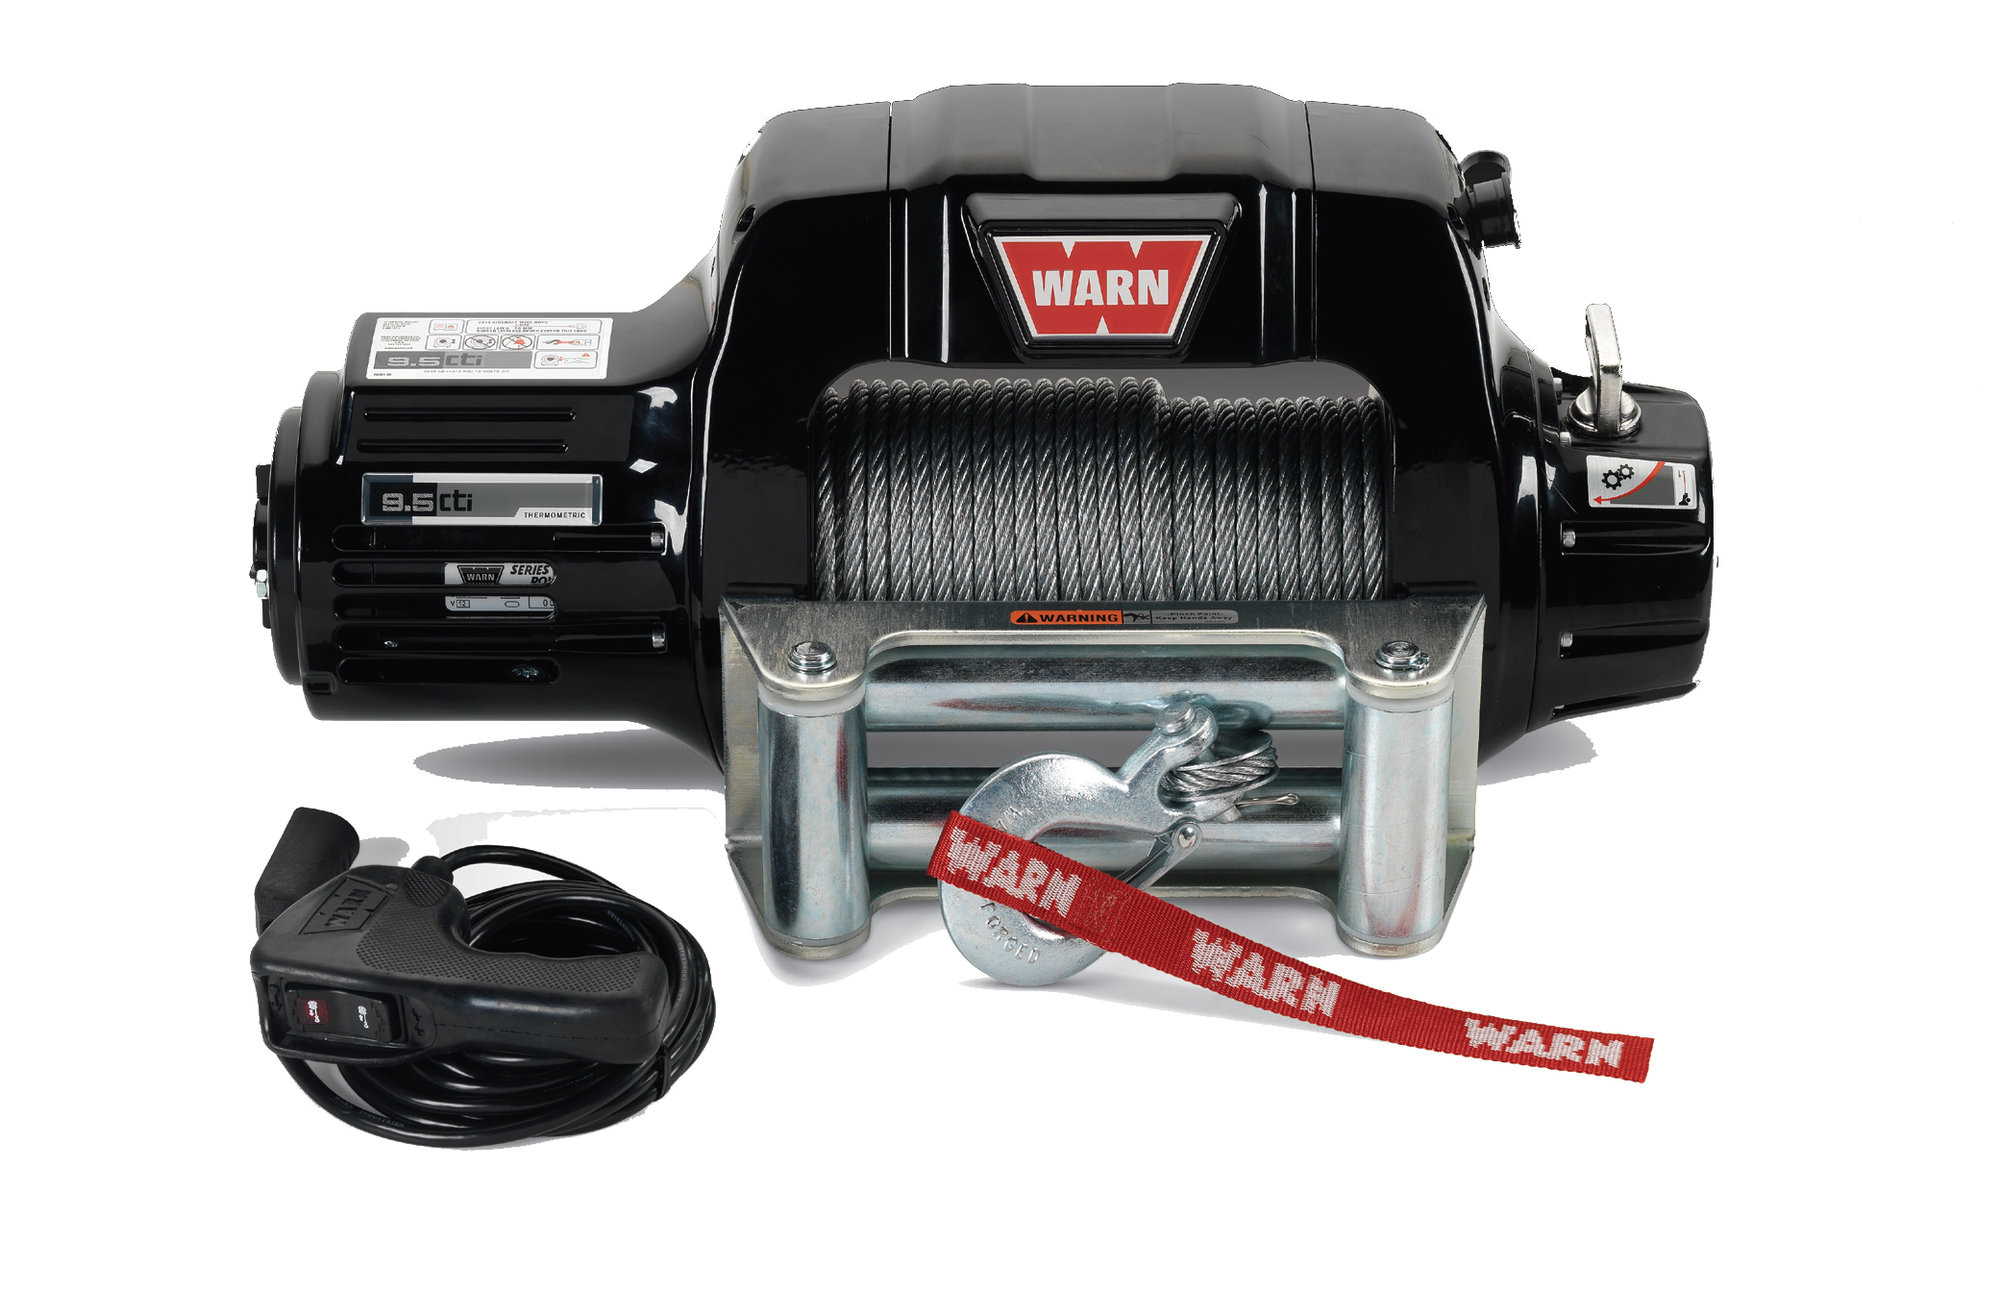 hight resolution of warn 97550 9 5cti contactor equipped winch with 125 wire rope and roller fairlead quadratec